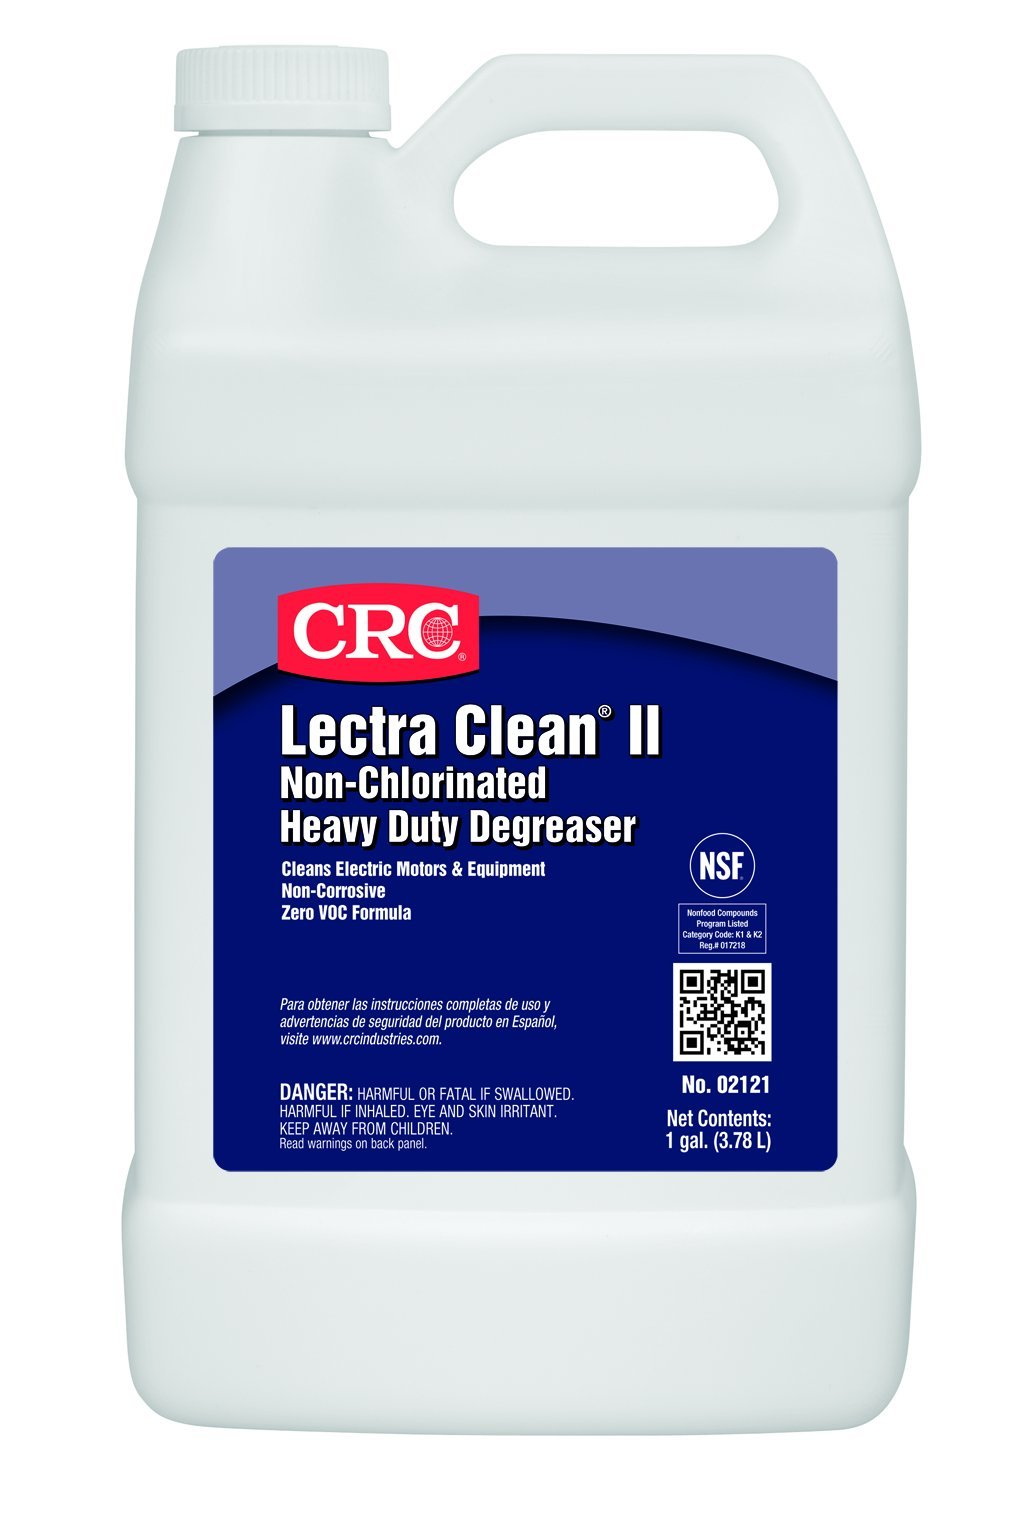 CRC Lectra Clean II Non-Chlorinated Heavy Duty Liquid Degreaser, 1 Gallon Bottle, Clear by CRC